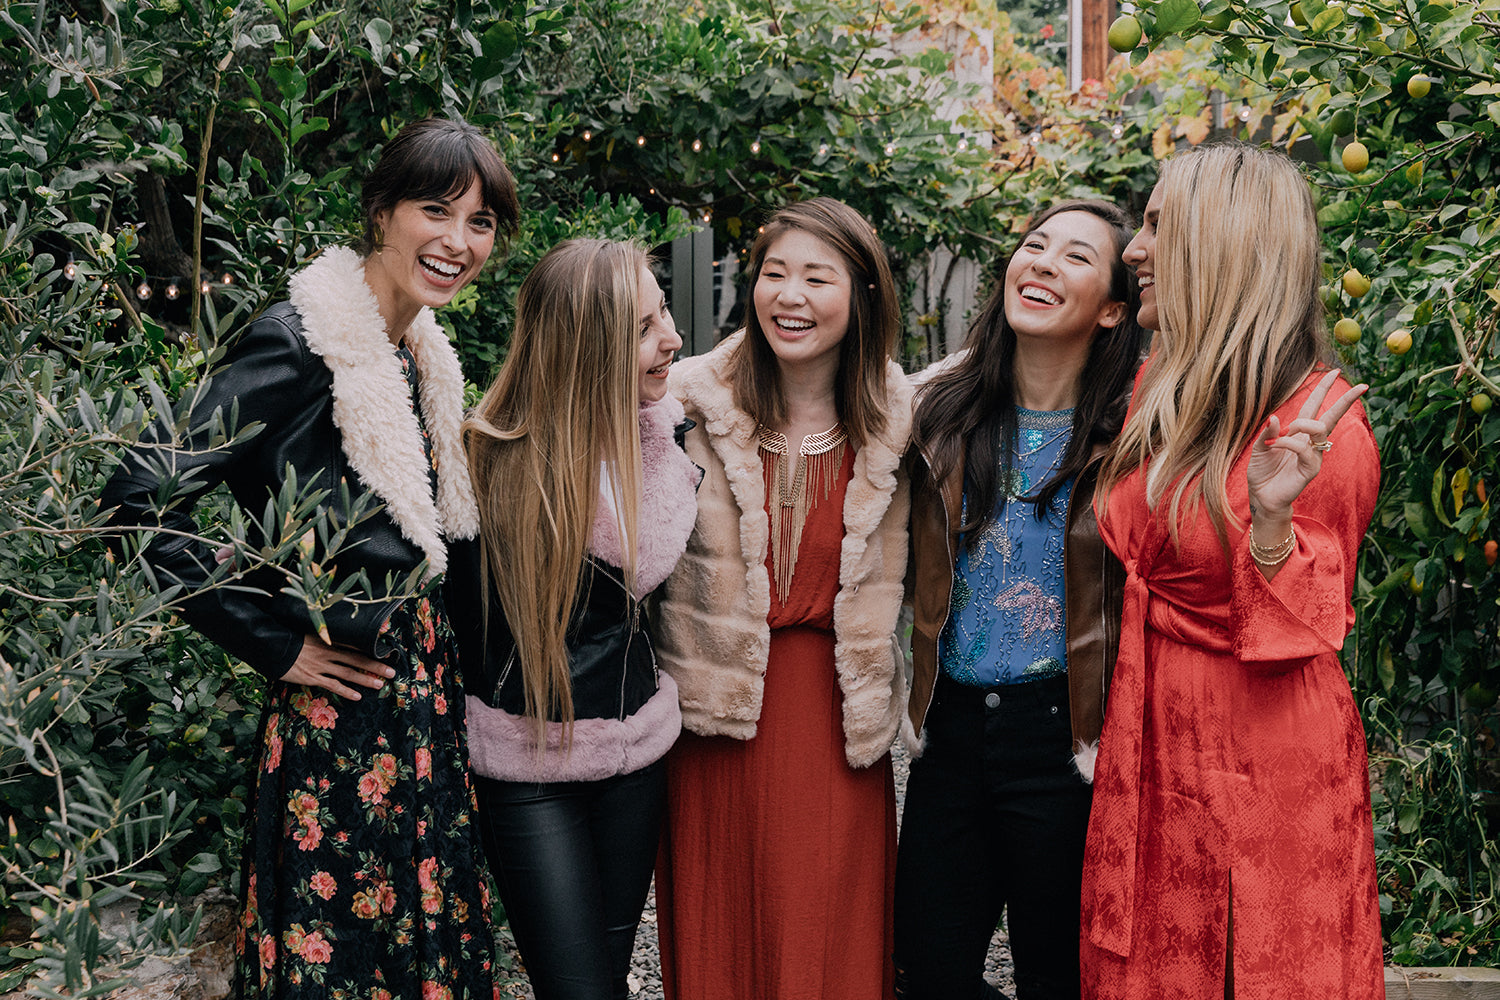 PETA x Coalition LA WWDMAGIC Vegan Thanksgiving Brunch Ashley Frohner (PETA Social Media Manager), Tori Alegria (Coalition LA Public Relations Manager),   Darci Wong (Coalition LA Creative Director), Christina Sewell (PETA Manager, Fashion Campaigns),   and Kelly Helfman (WWDMAGIC Vice President)